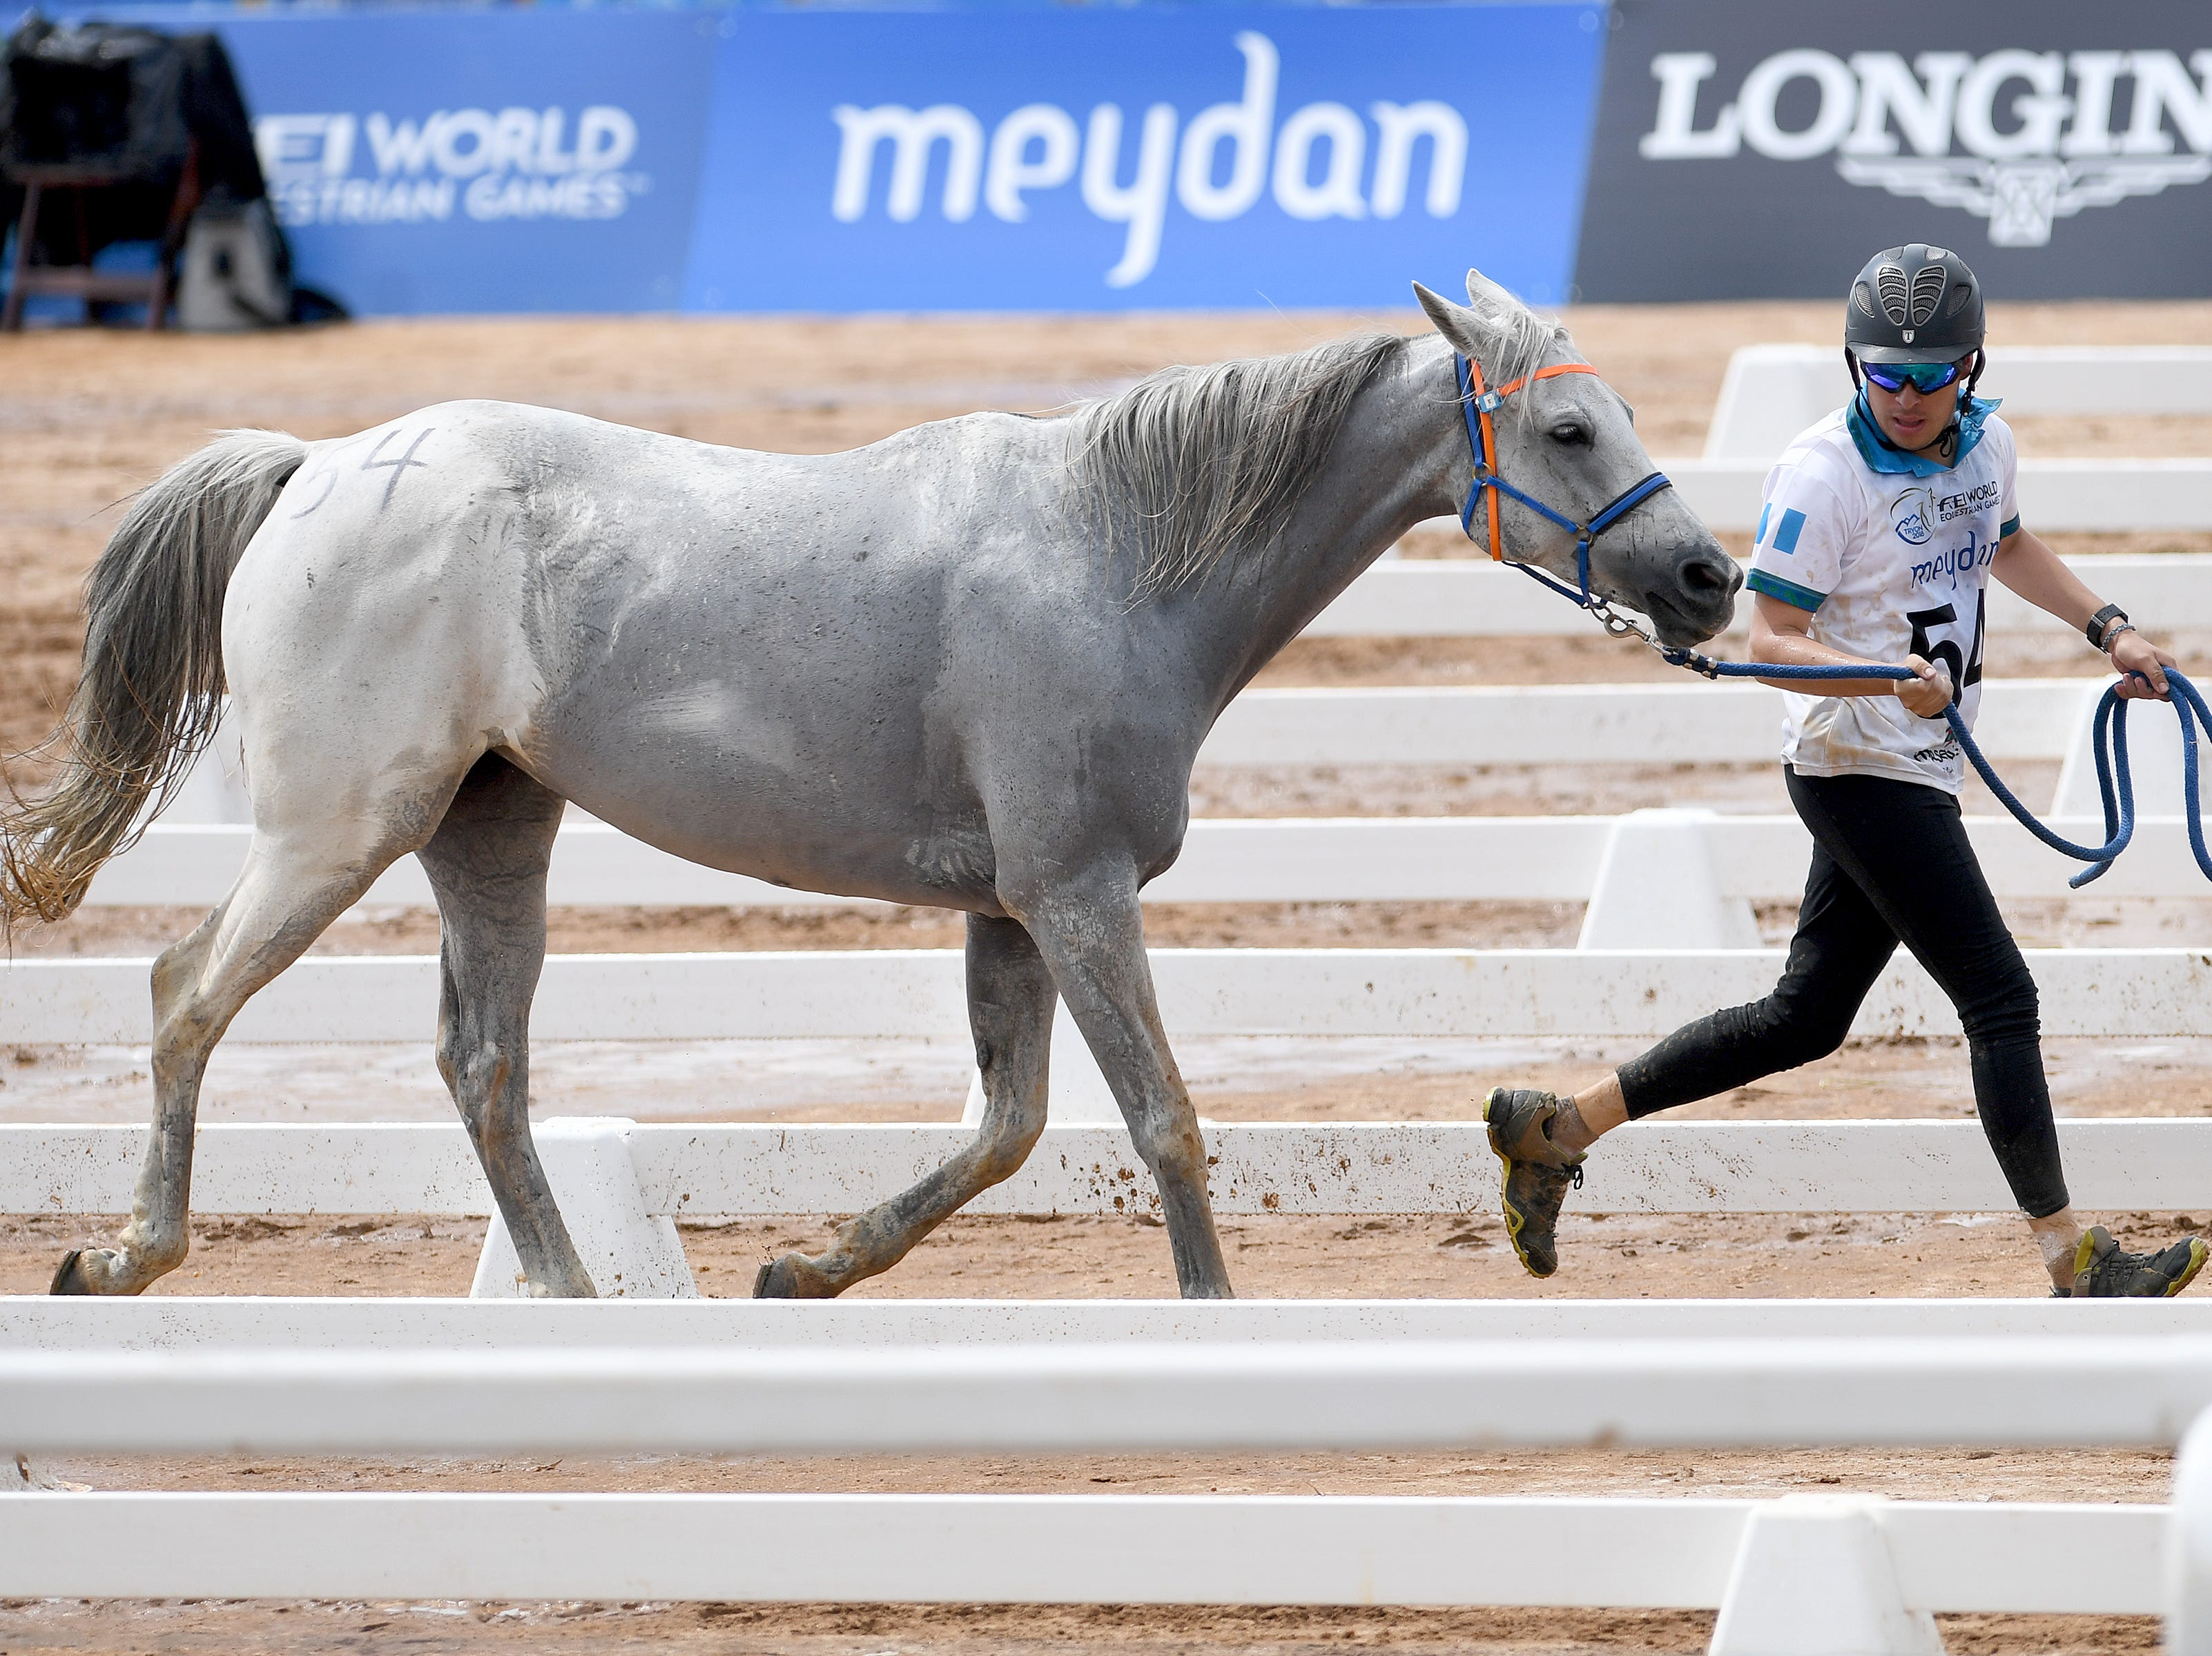 Guatemalan rider Maurico Evans, and his horse, Zara Me, go through their veterinarian checks before heading out for another lap of the Endurance race during the FEI World Equestrian Games at the Tryon International Equestrian Center on Sept. 12, 2018.